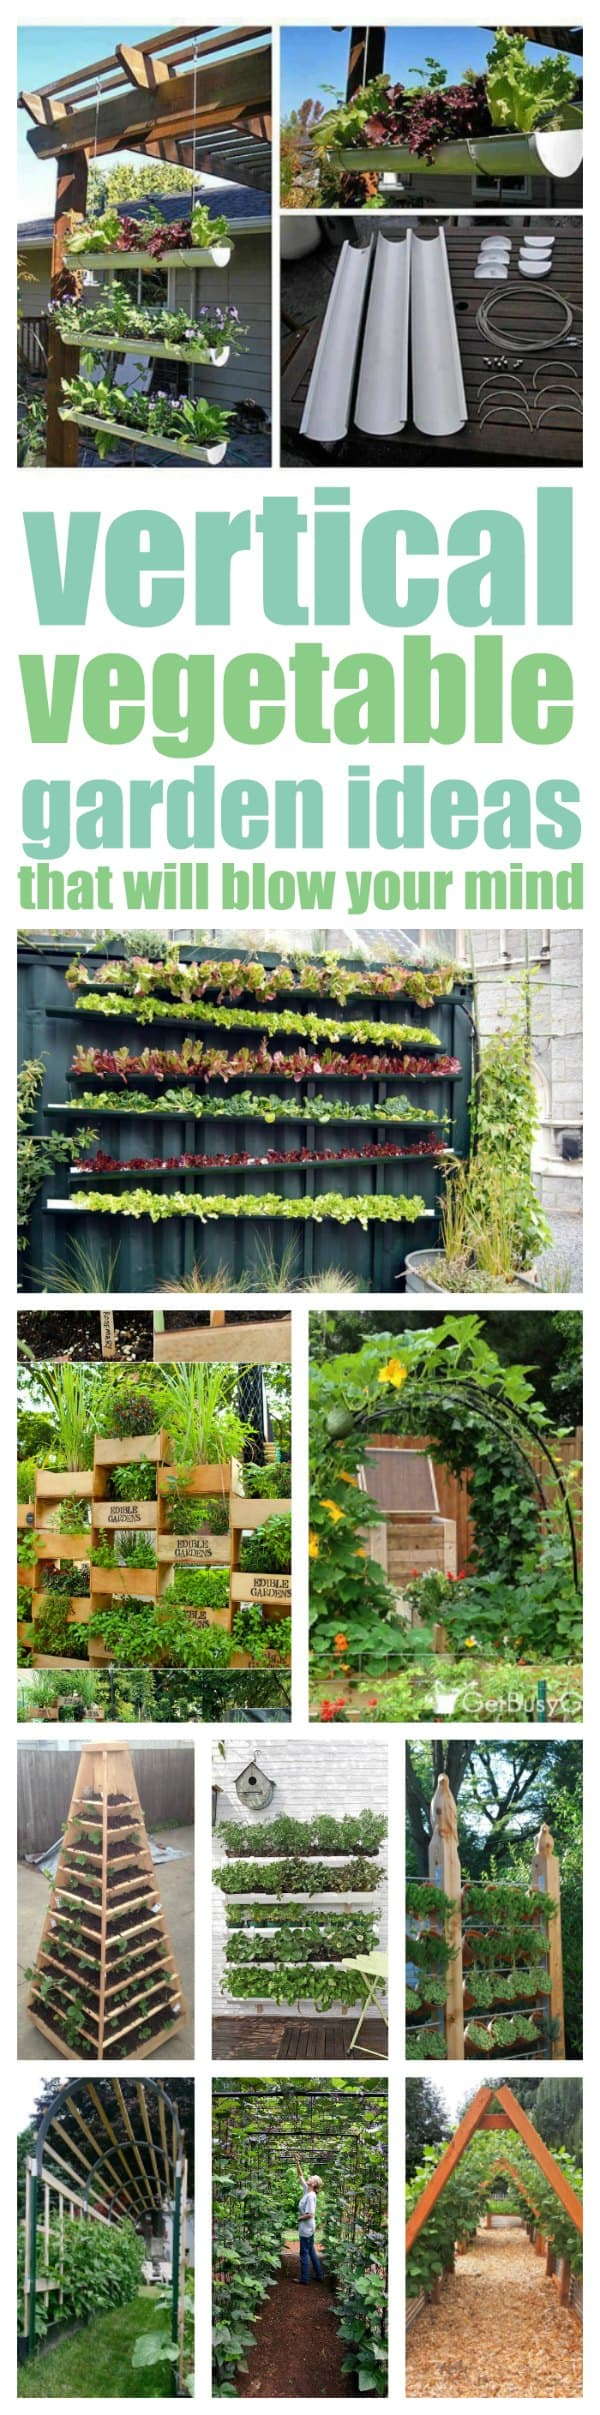 Vertical Gardening Ideas. 20 Vertical Vegetable Garden Ideas. 43 ...